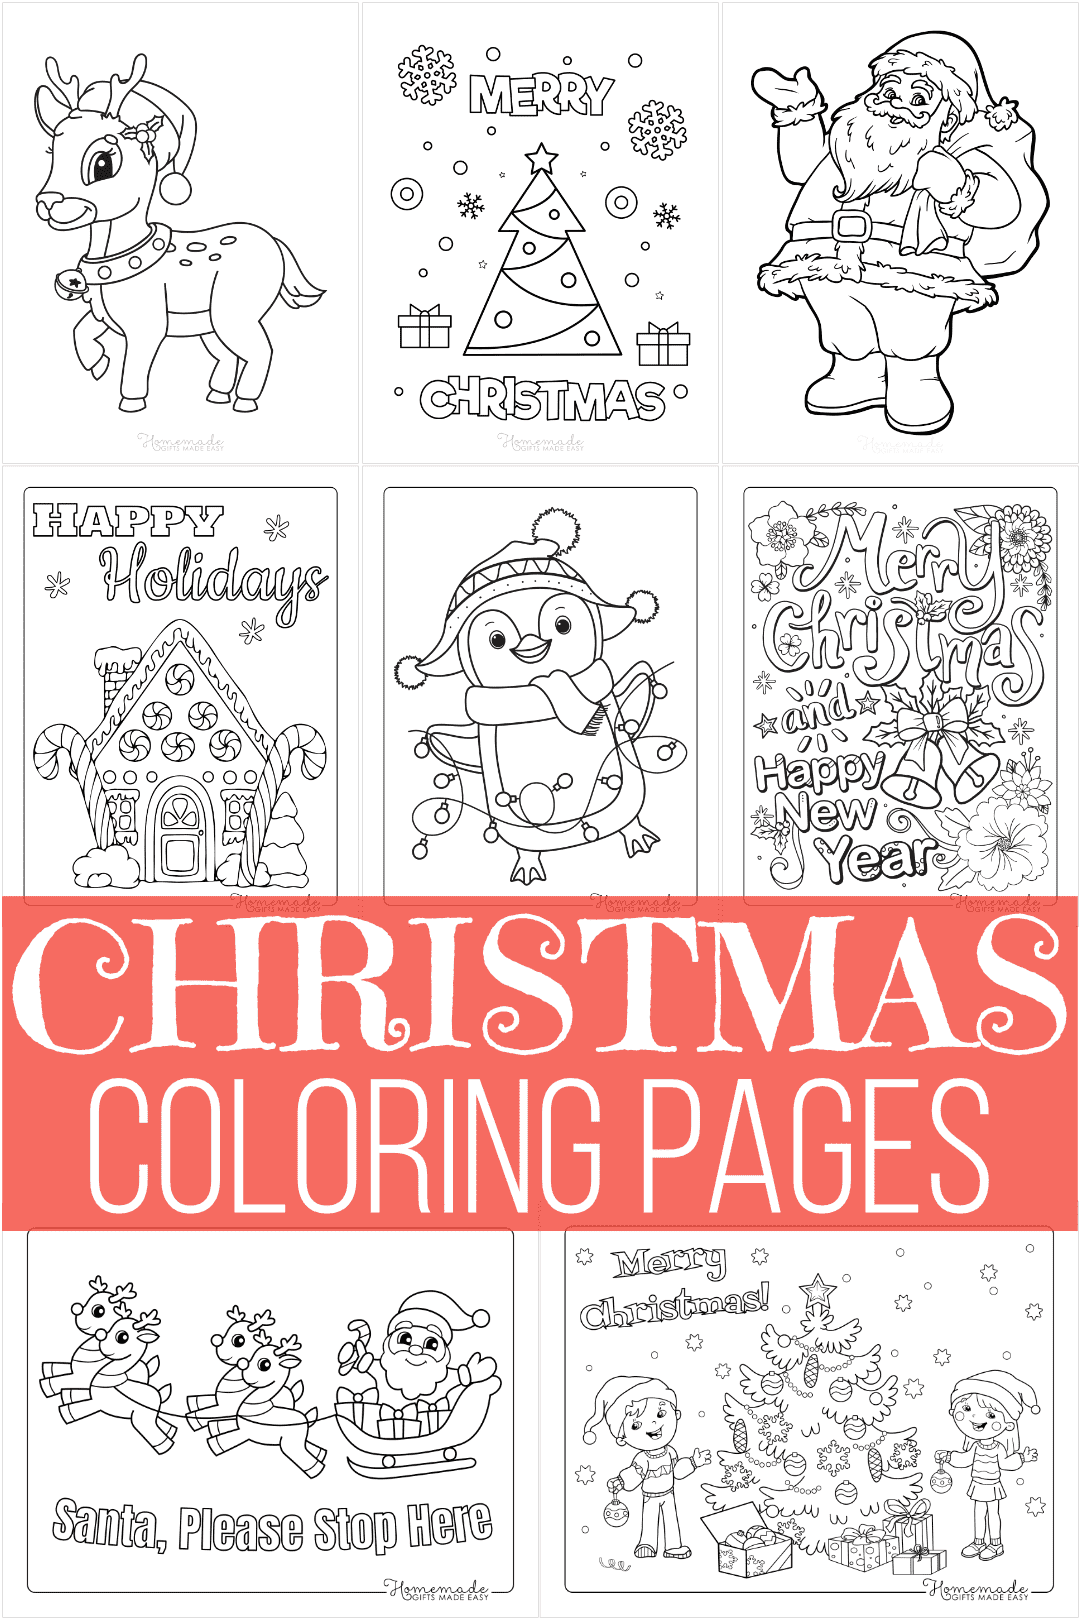 free printable christmas coloring pages - 65+ designs